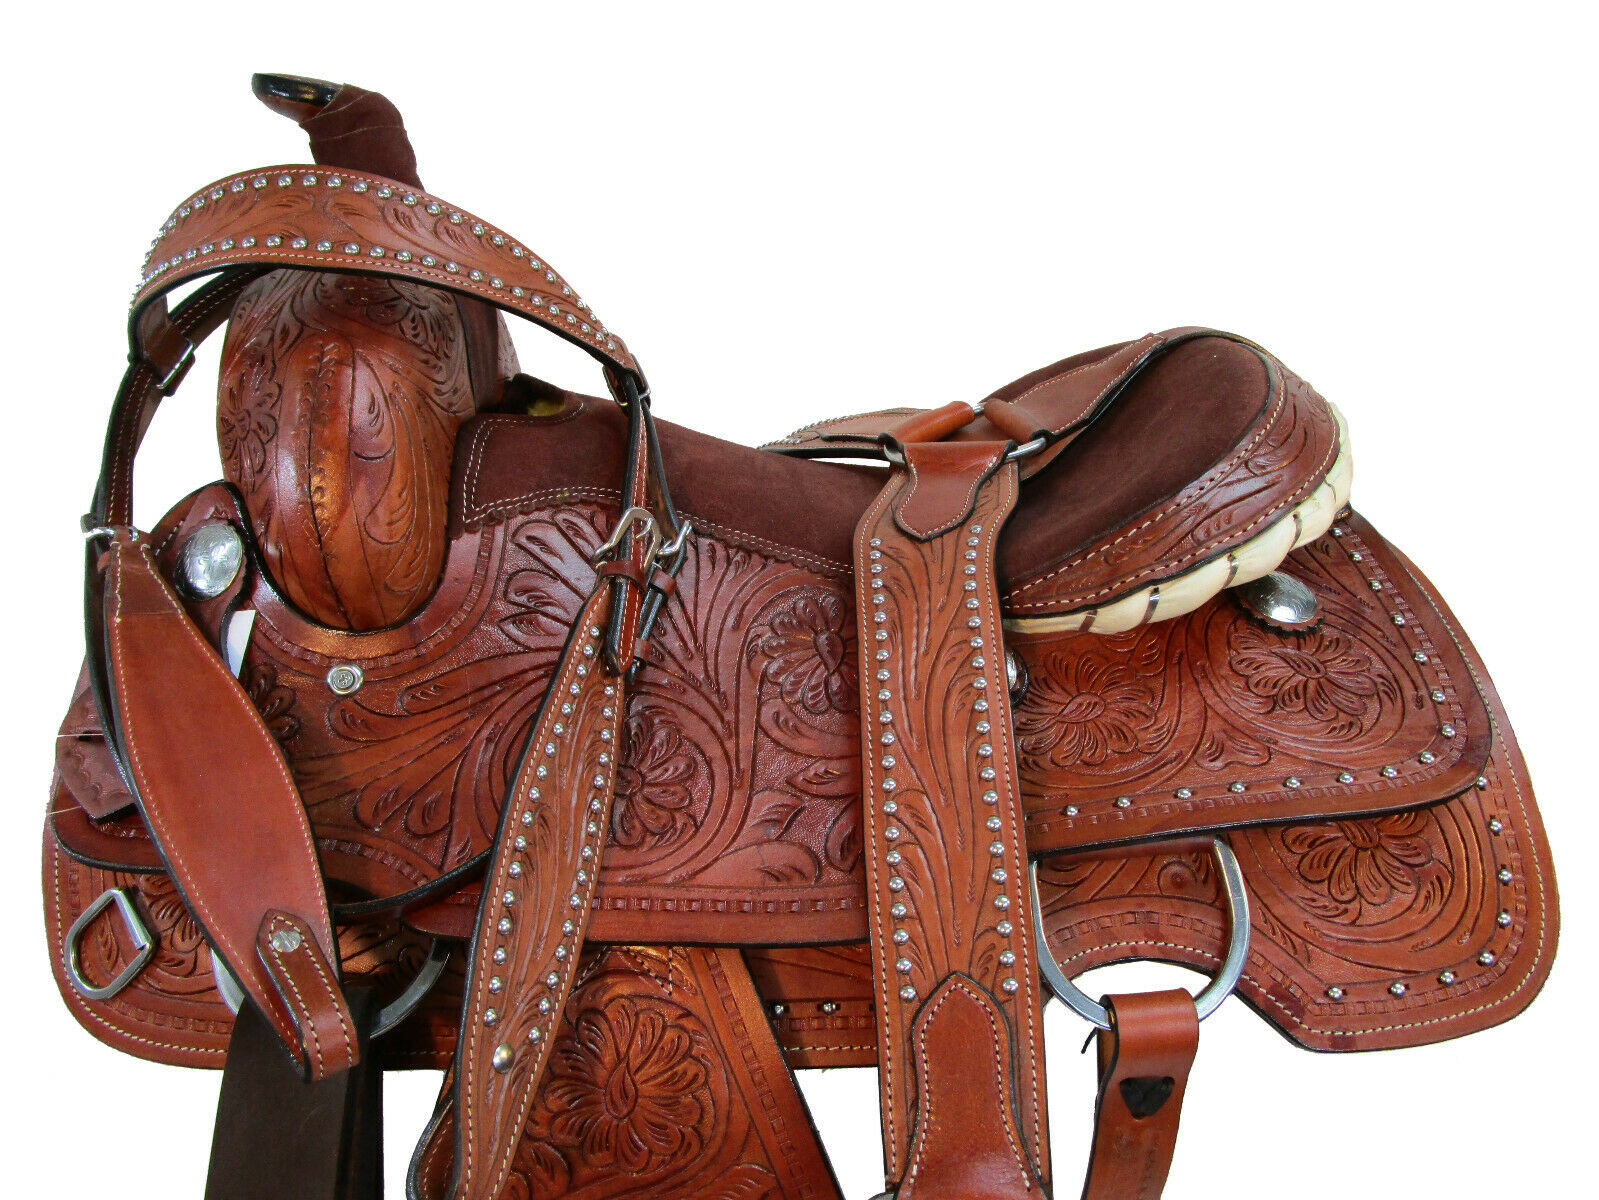 WESTERN SADDLE ROPING HORSE PLEASURE RANCH FLORAL TOOLED LEA